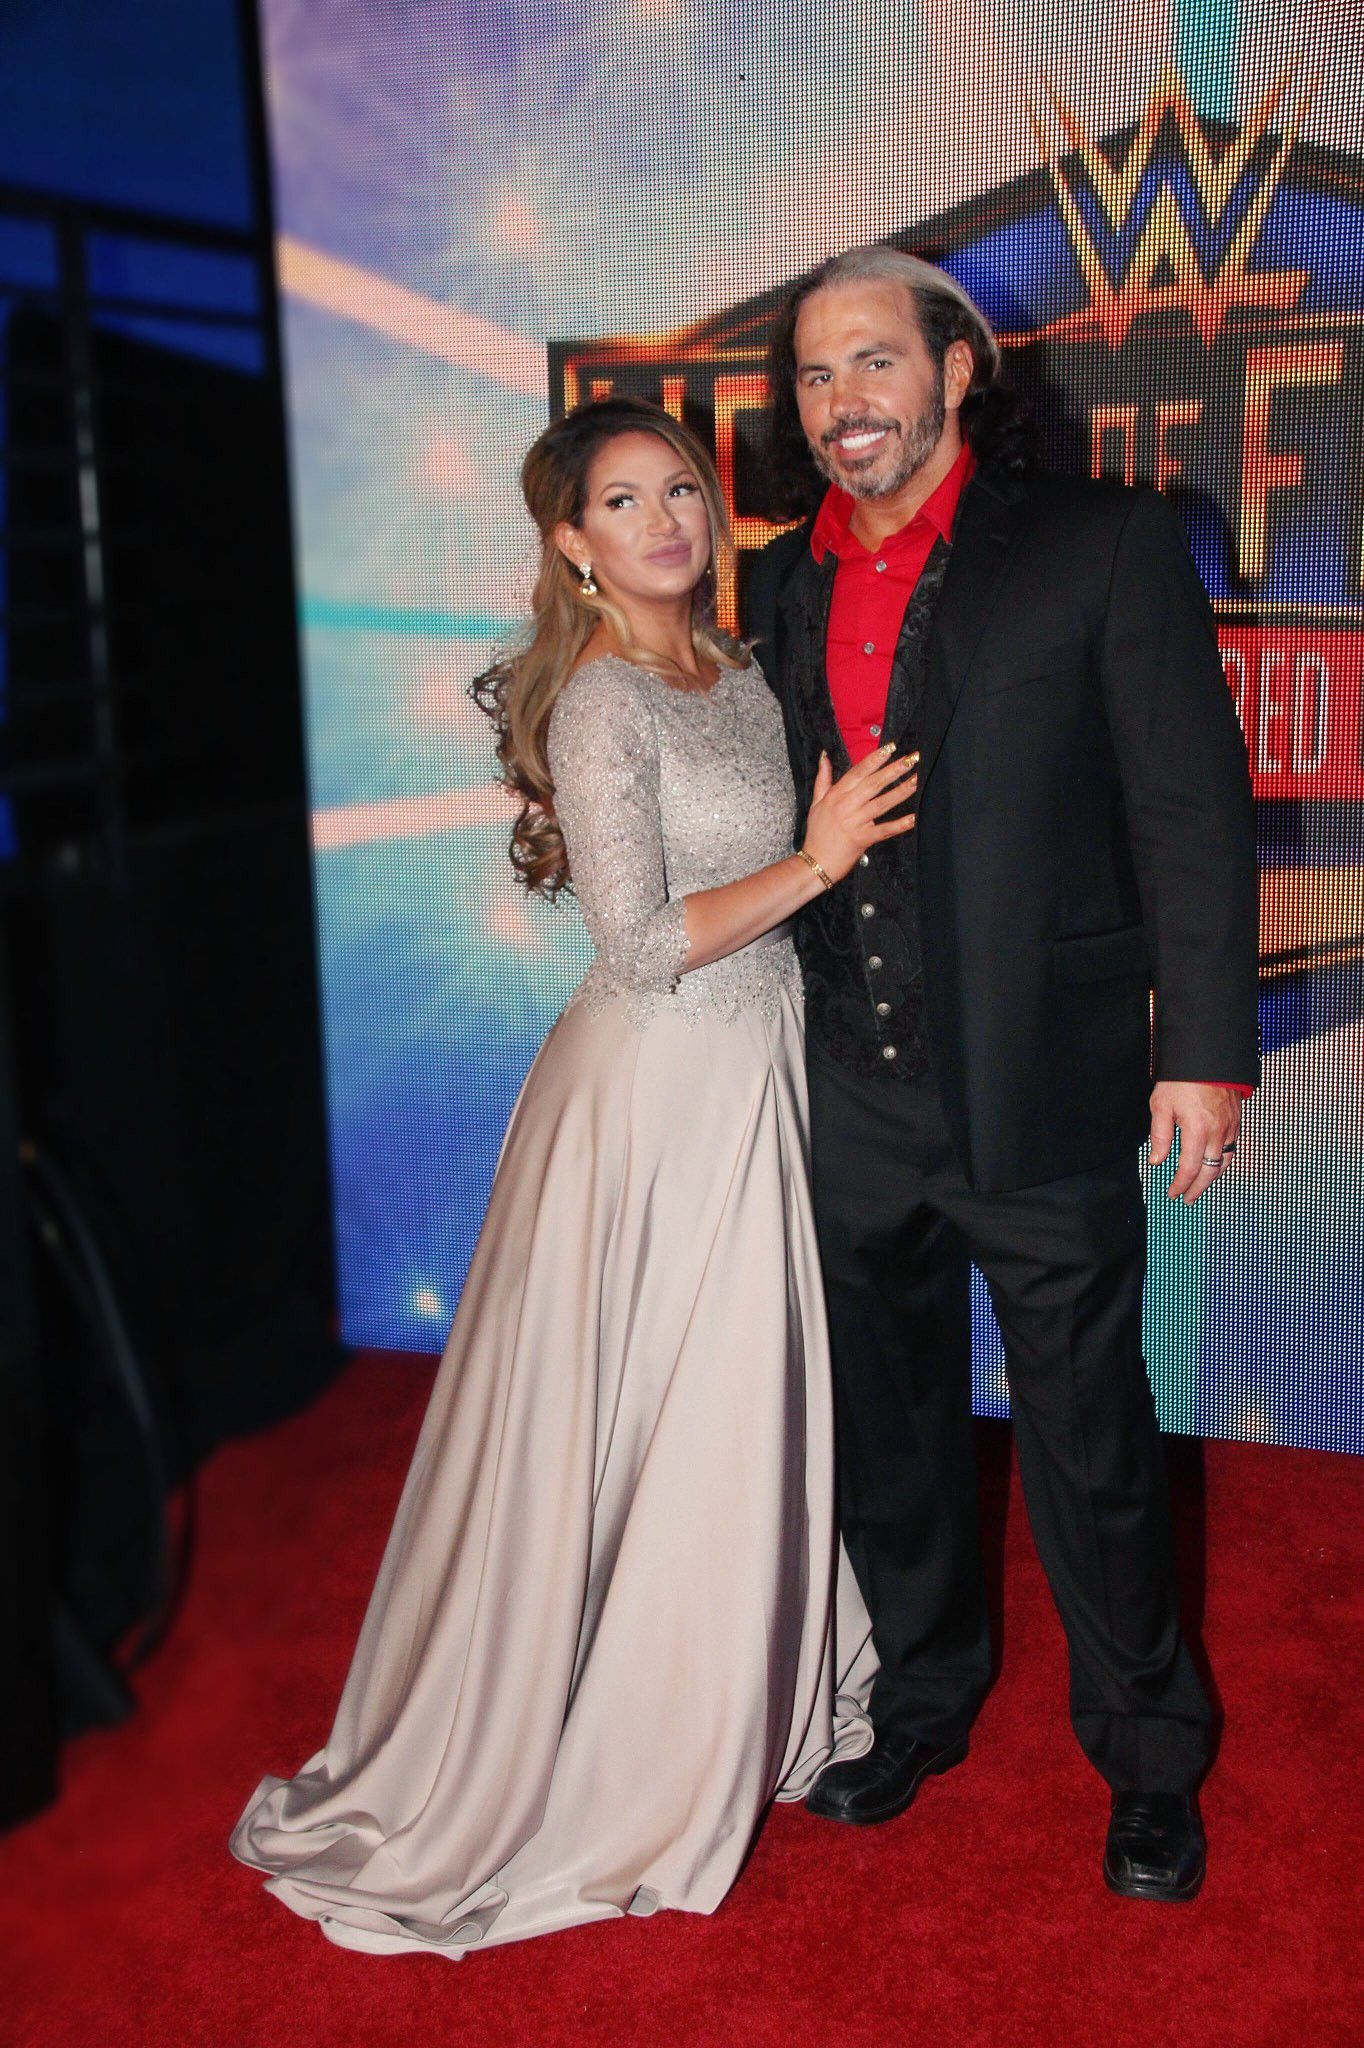 f76902c805f6a WWE Superstar Matt Hardy and his wife Rebecca Reyes Hardy at the 2018 WWE  Hall